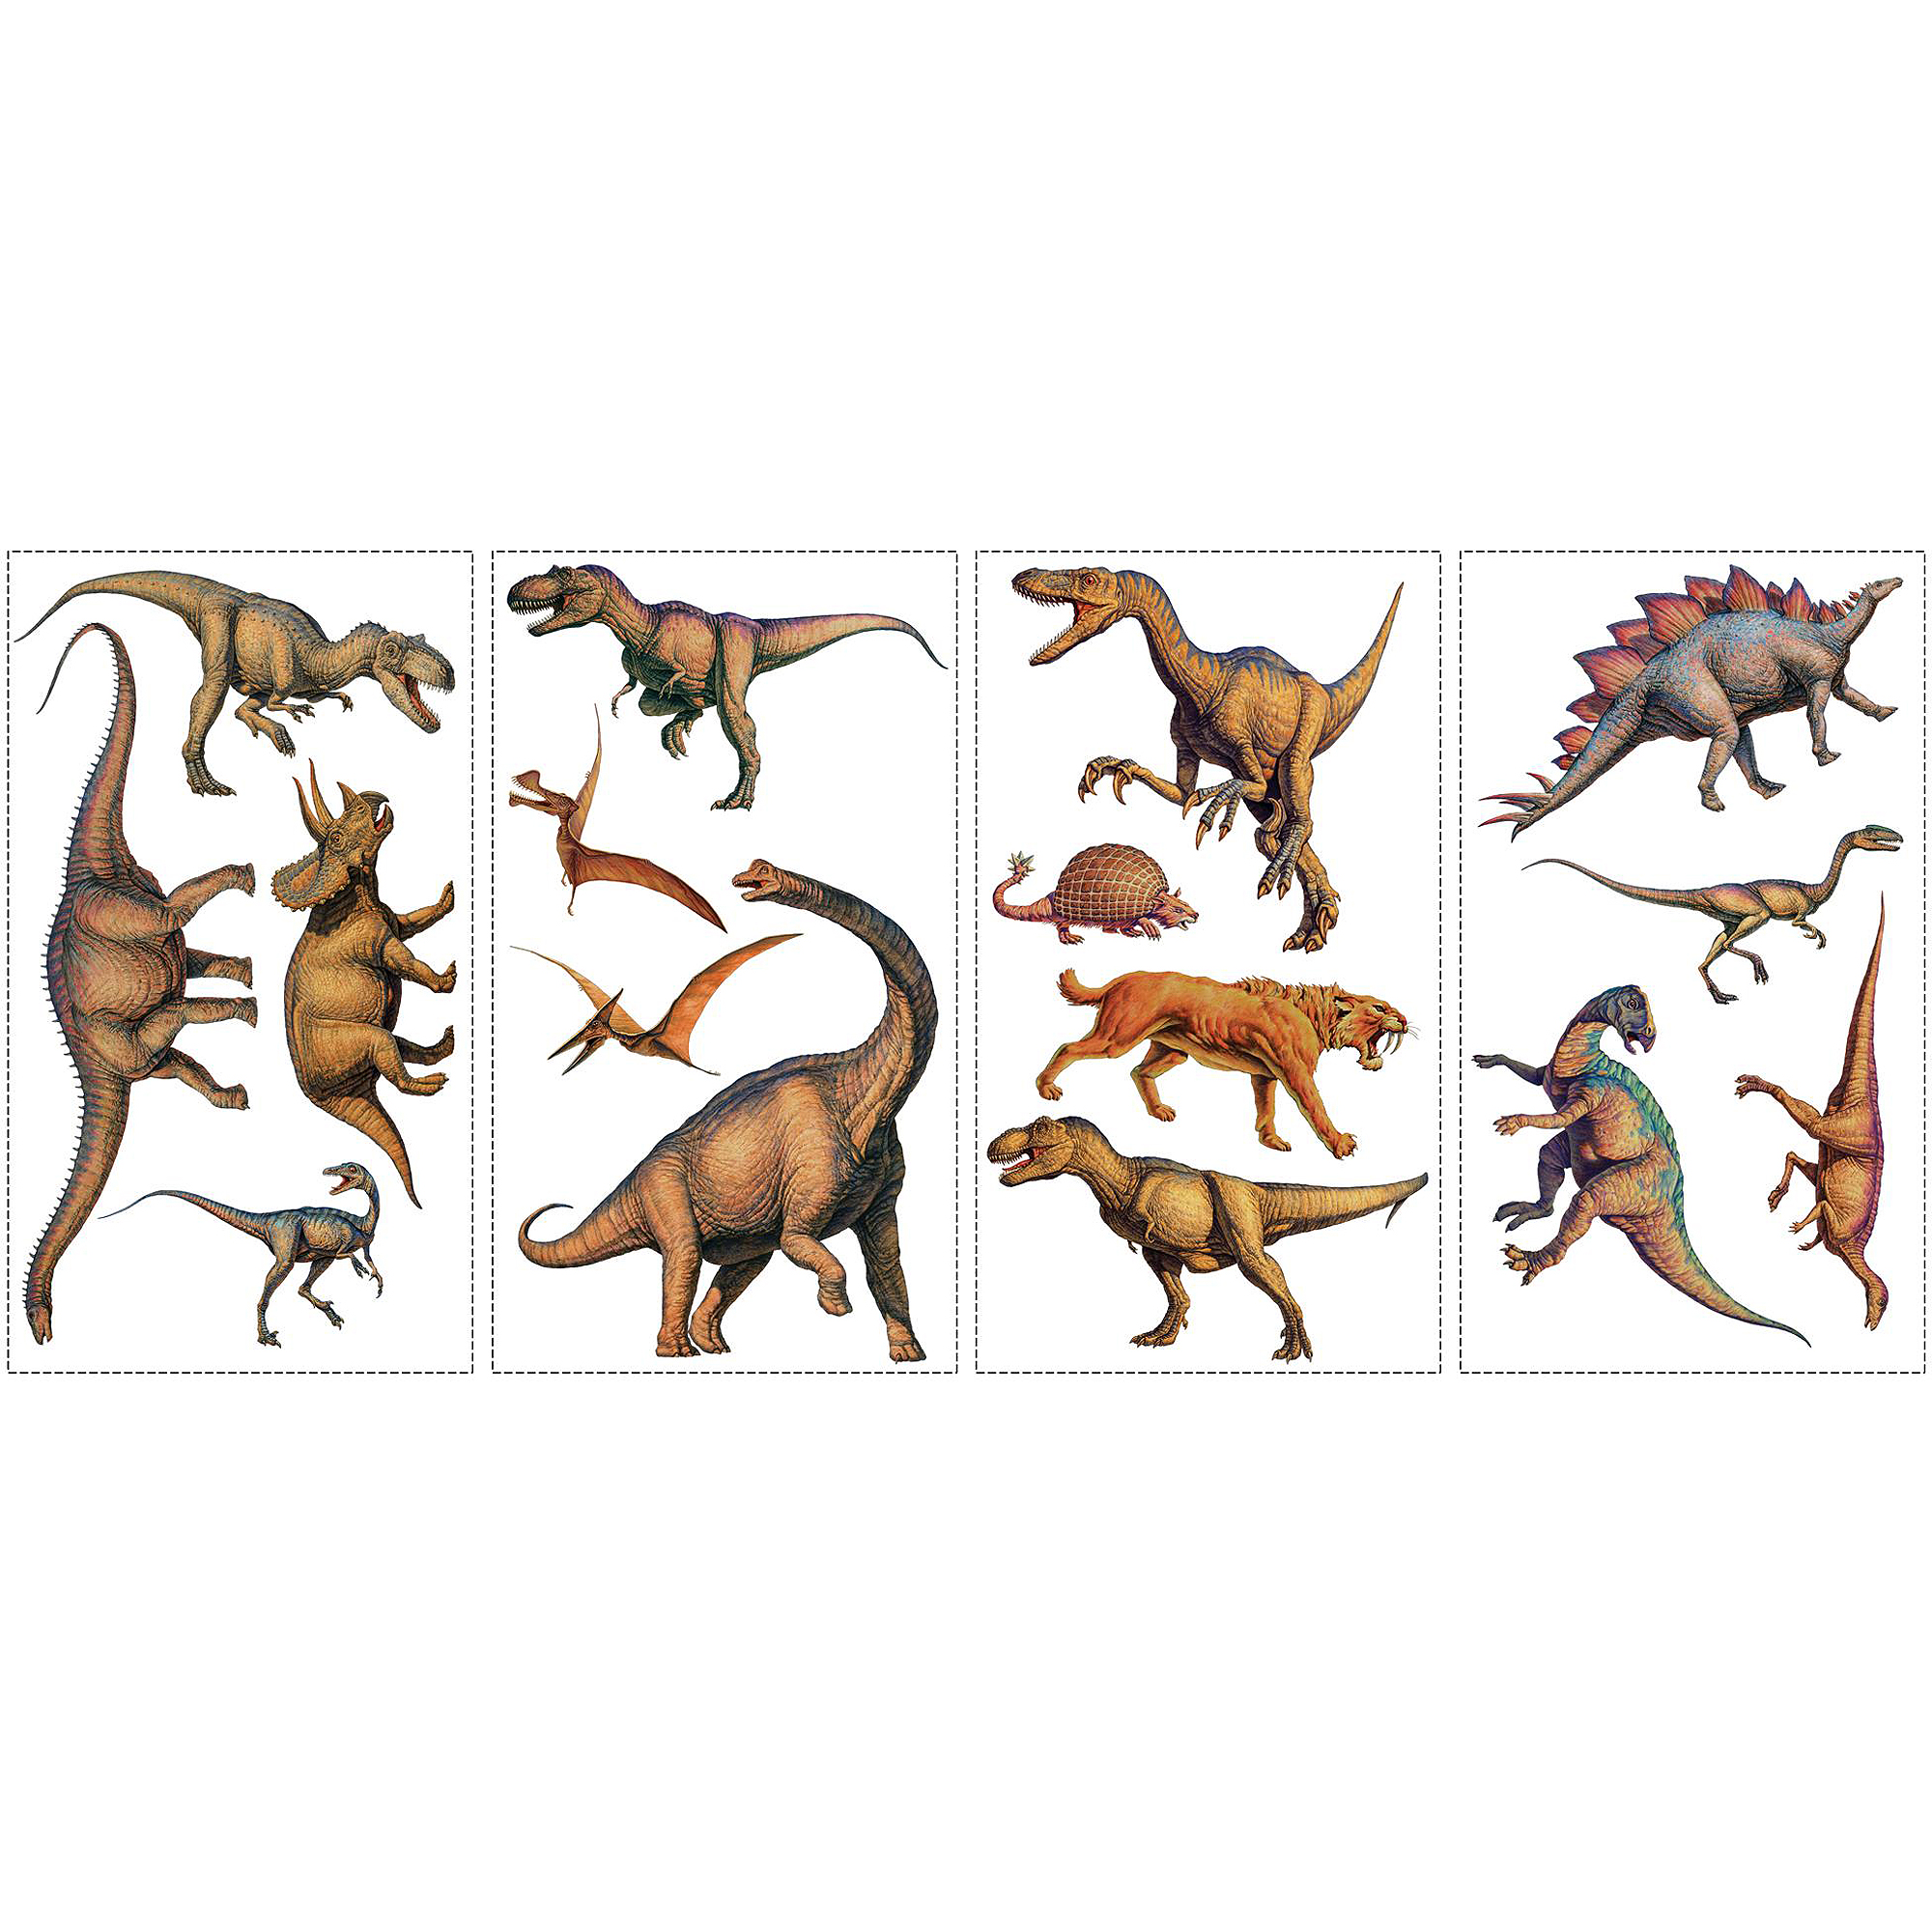 RoomMates Dinosaurs Peel and Stick Wall Decals